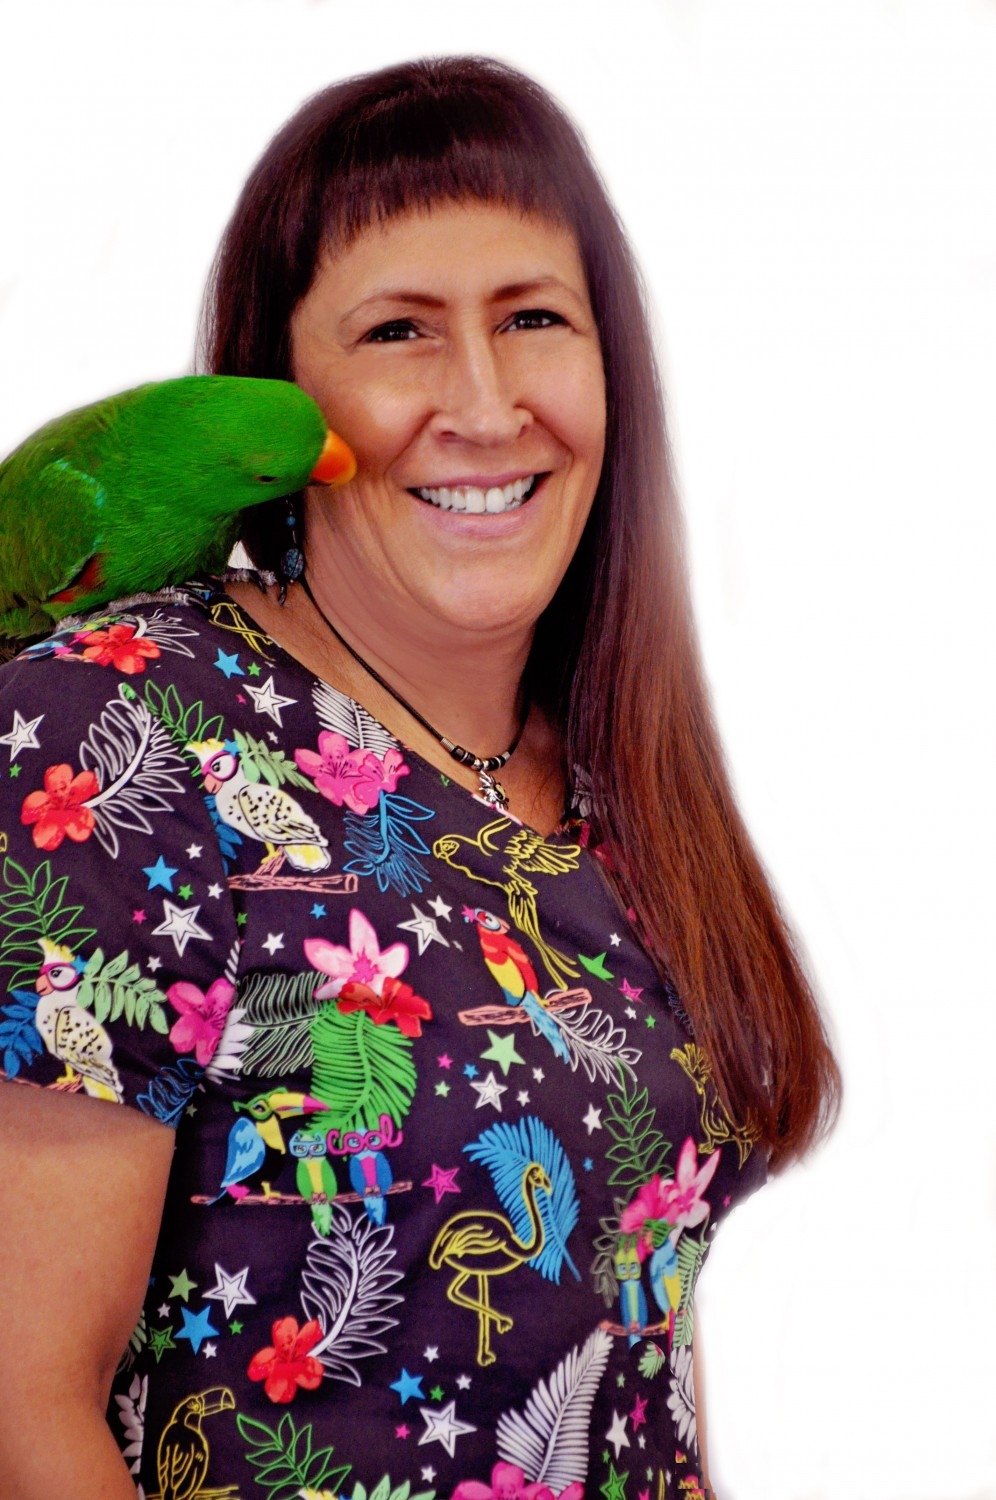 Medical Center For Birds Oakley California - Tammy Rocha, Practice Manager